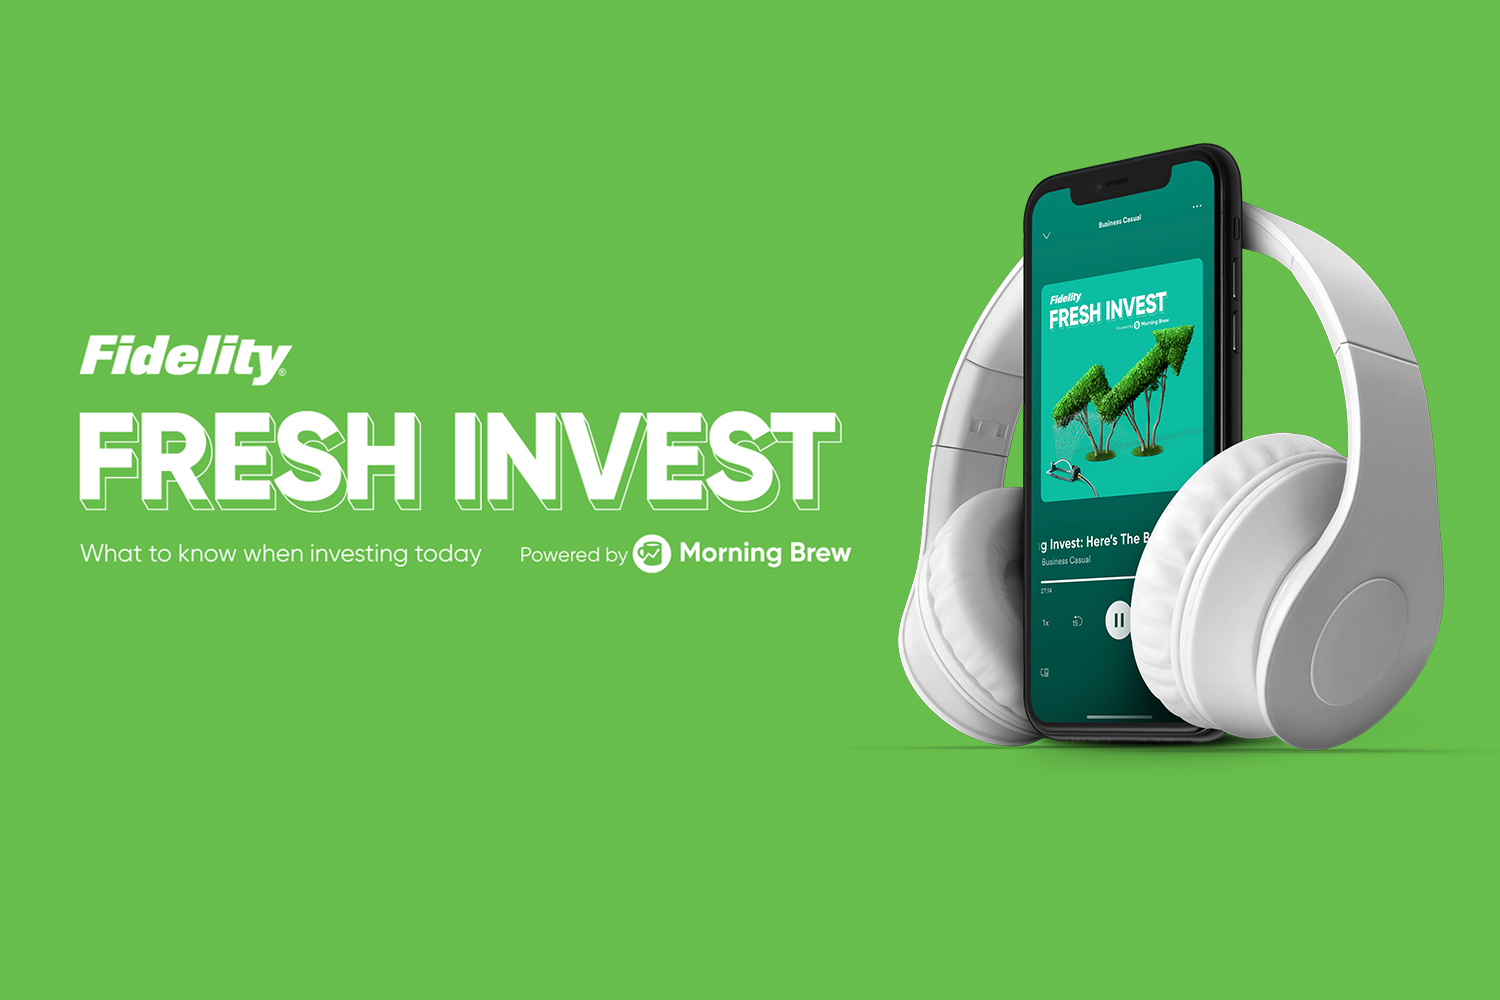 Listen to Fresh Invest, our new podcast with Fidelity